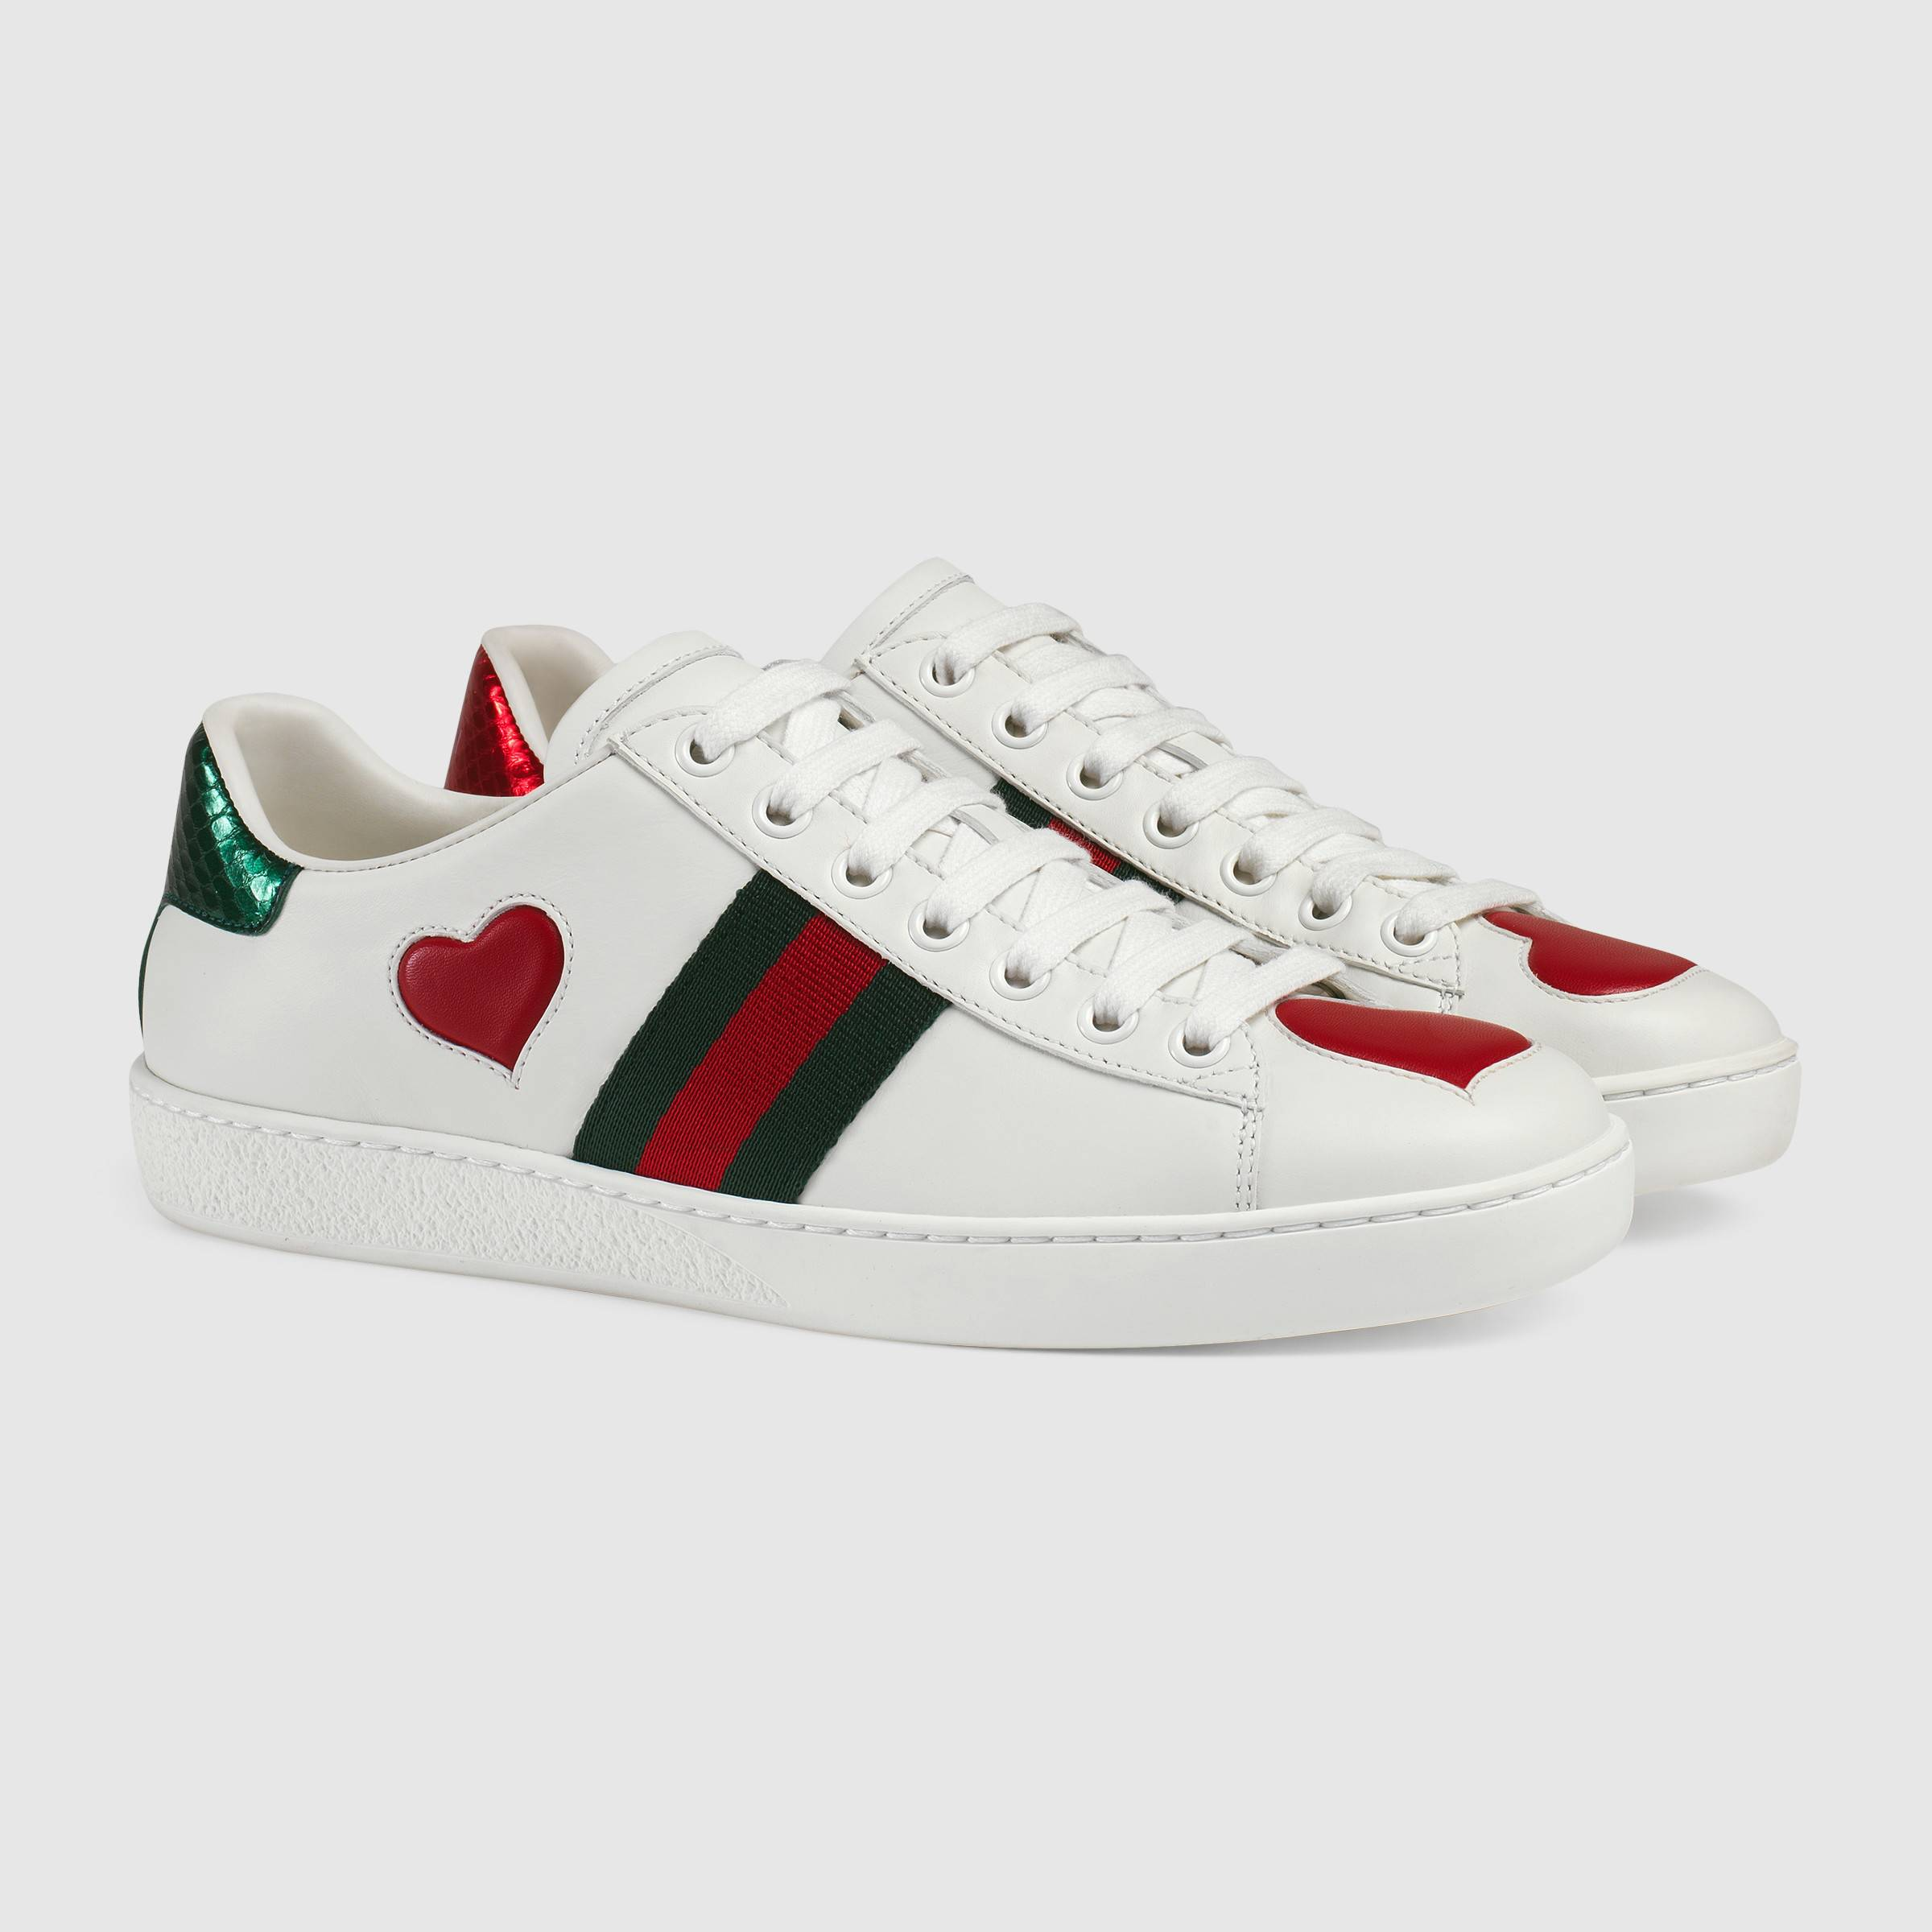 435638_A38M0_9074_002_098_0000_Light-Ace-embroidered-sneaker.jpg